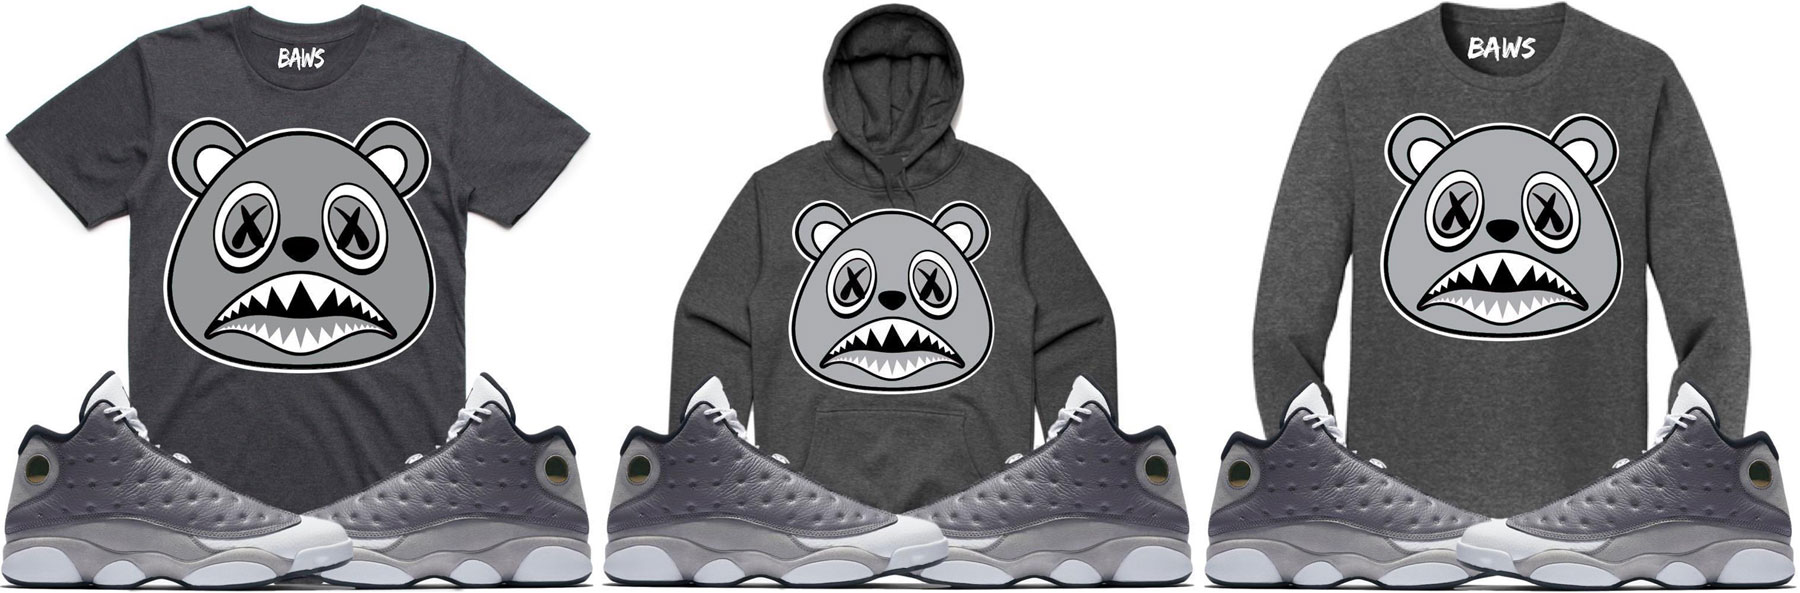 air-jordan-13-atmosphere-grey-sneaker-clothing-baws